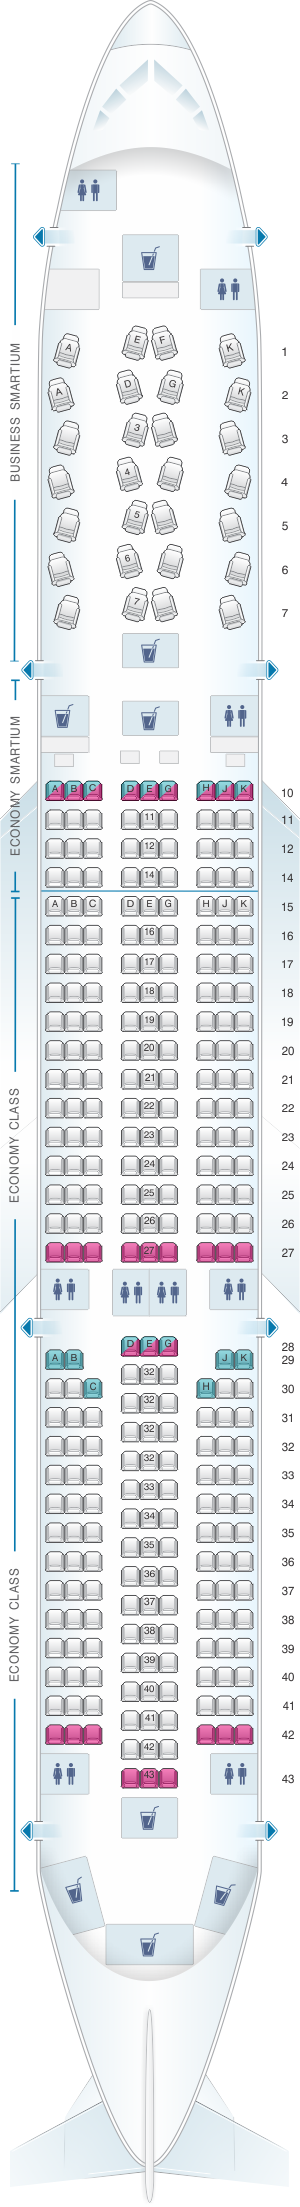 Seat map for Asiana Airlines Airbus A350 900